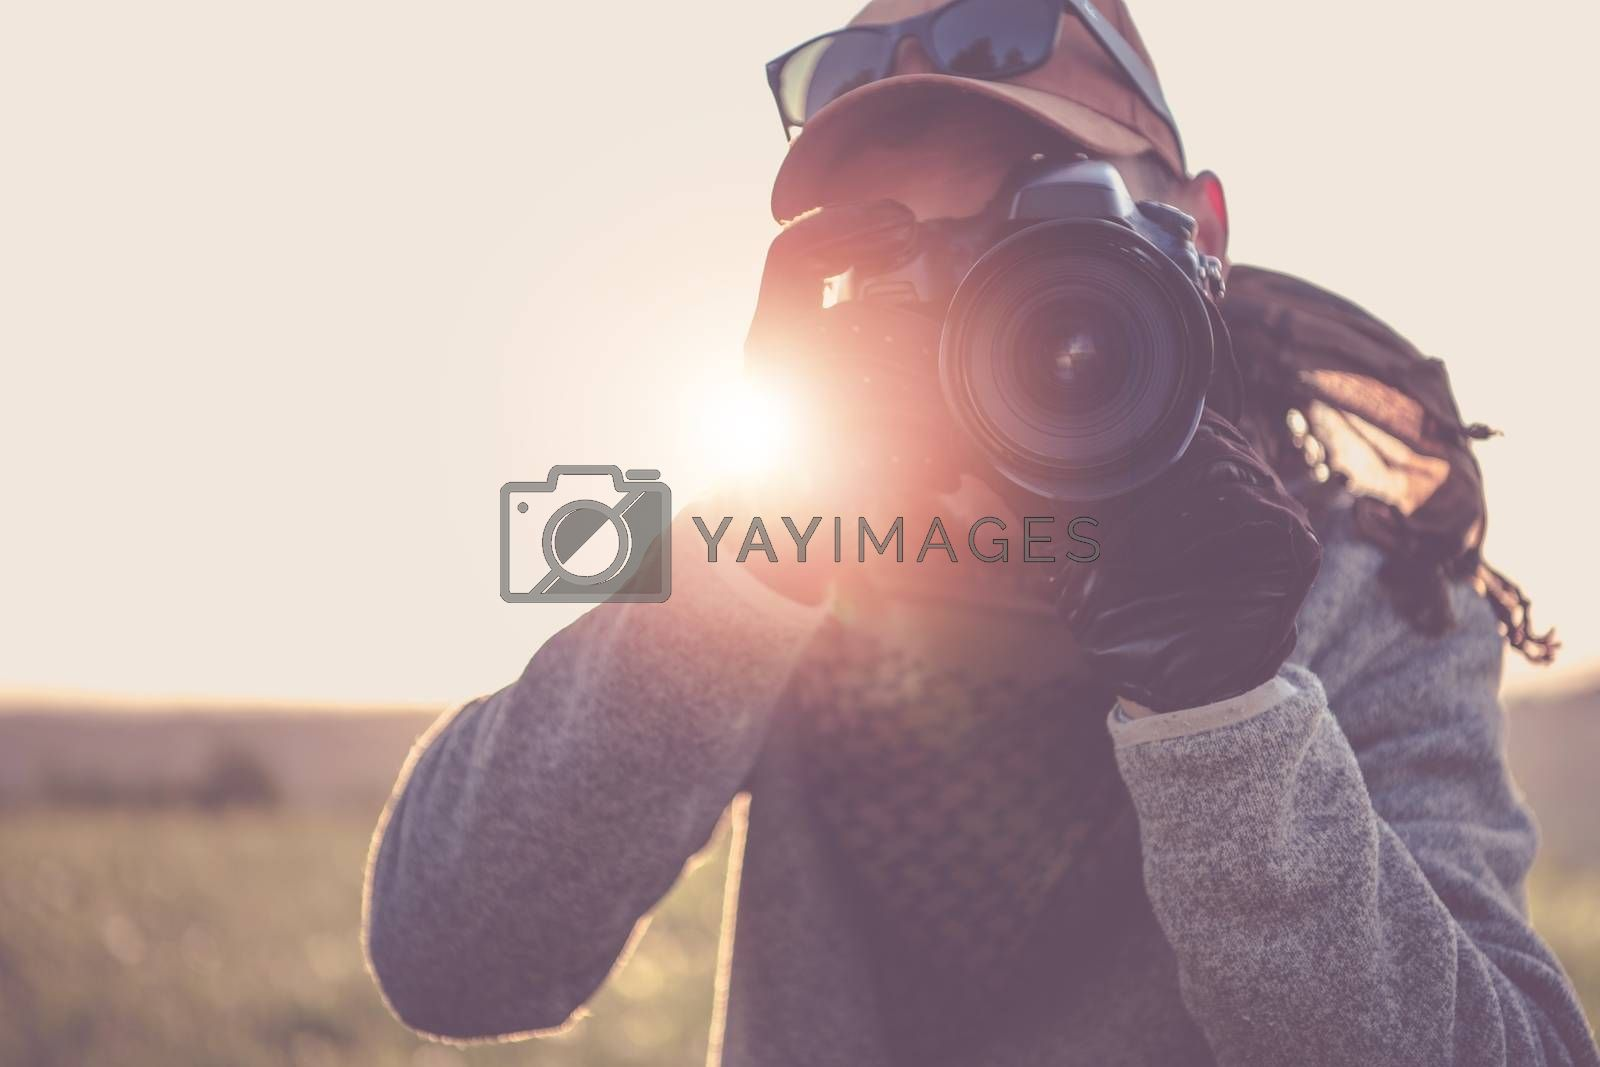 Press Photographer with Camera by welcomia